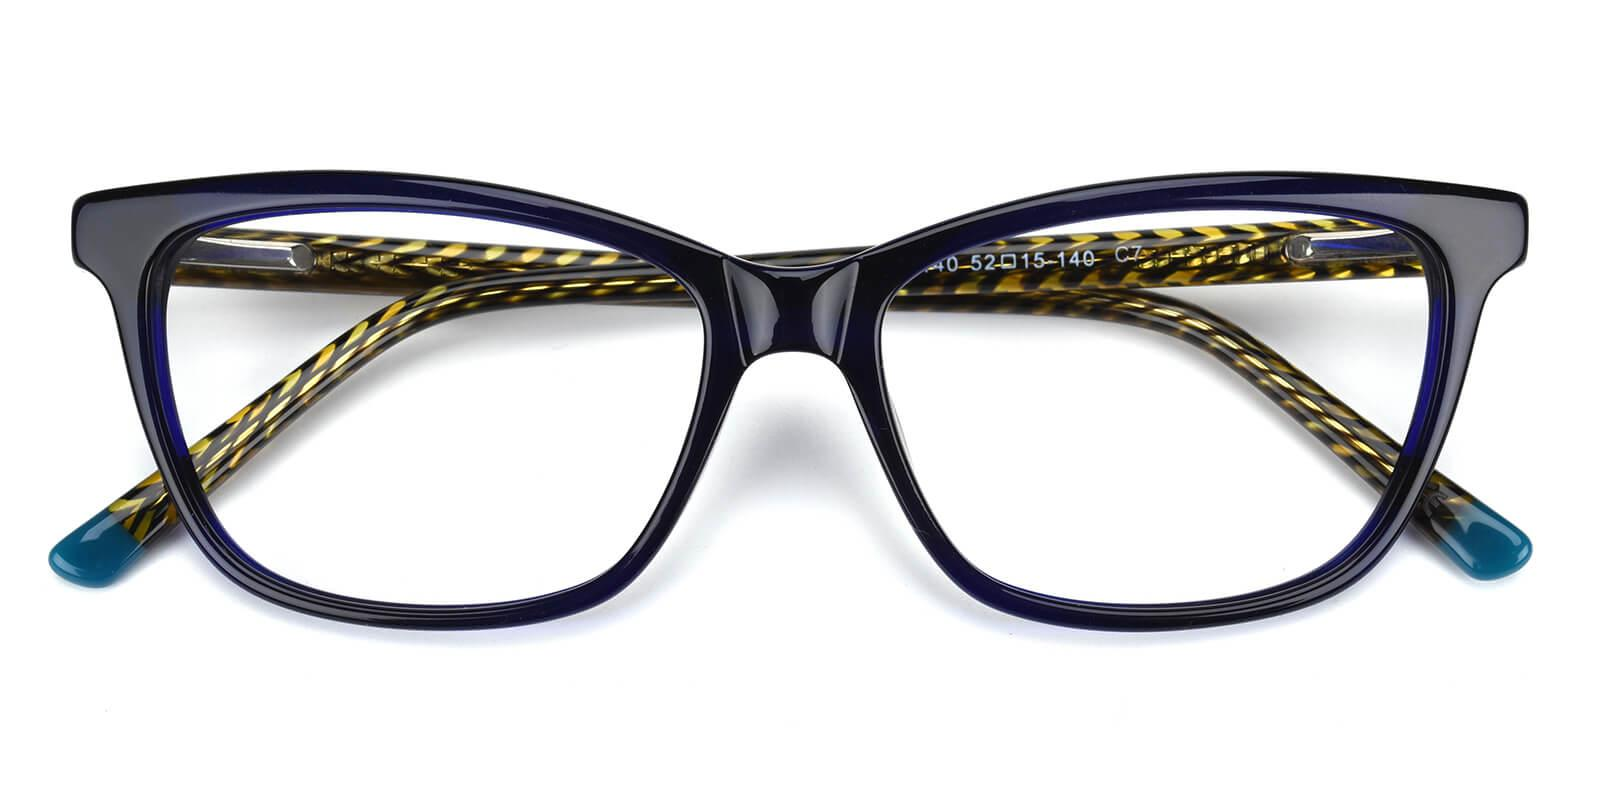 Ezra-Blue-Cat-Acetate-Eyeglasses-detail